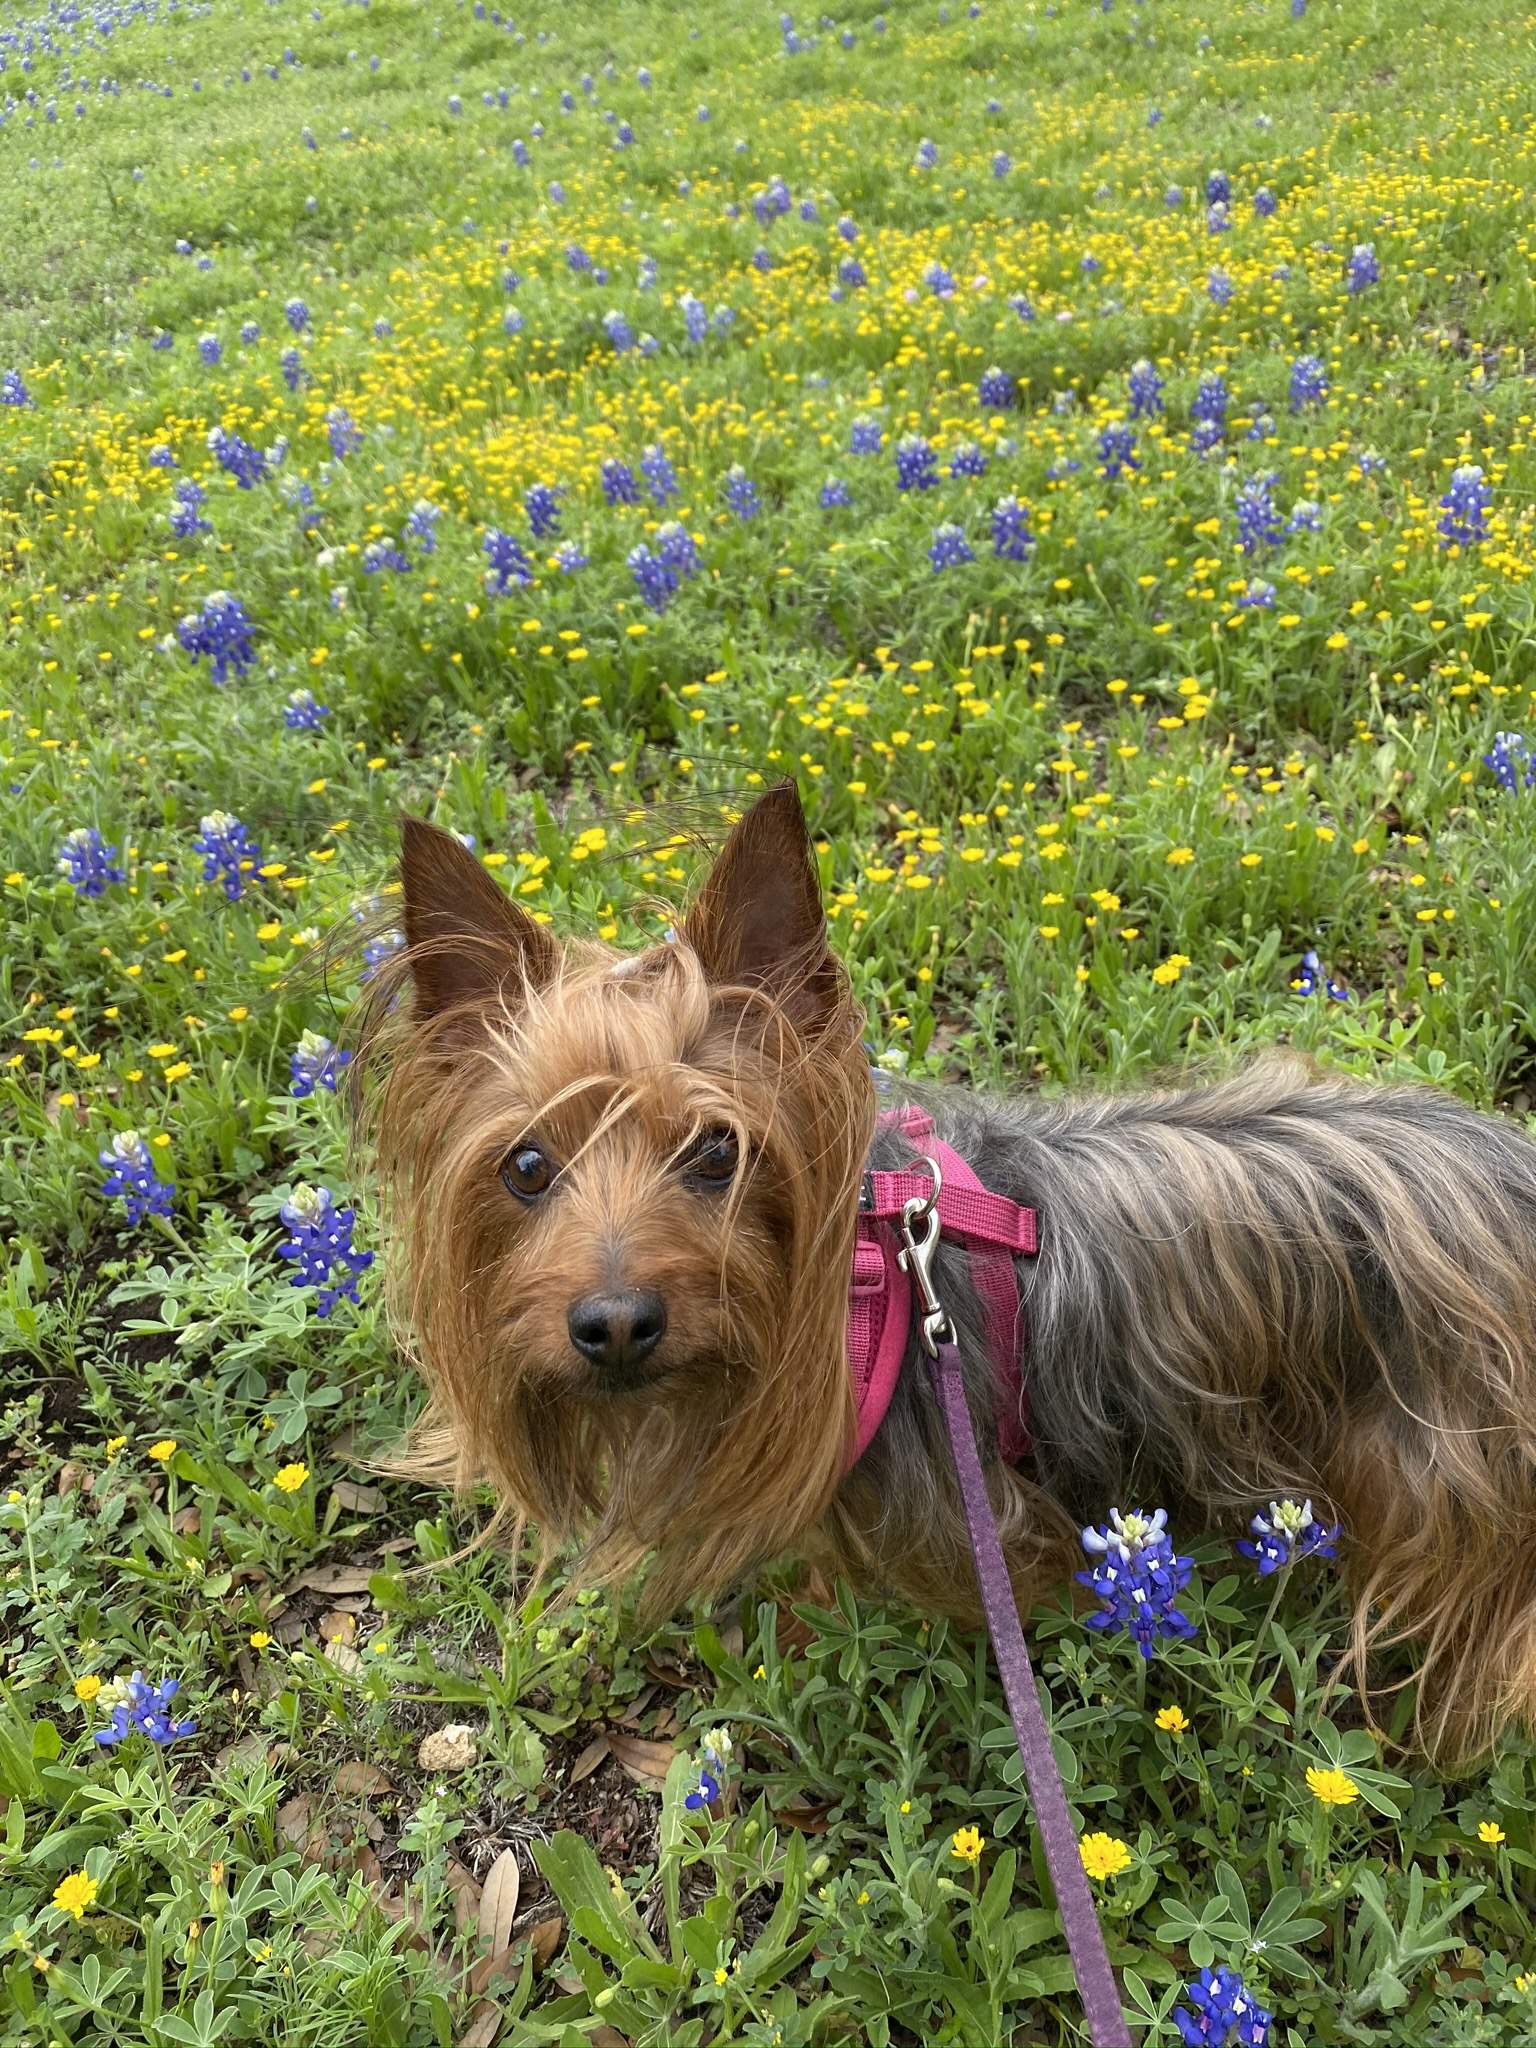 A little bit of sunshine and bluebonnets...Skyy is enjoying the weather (Courtesy Kathi Deaton)